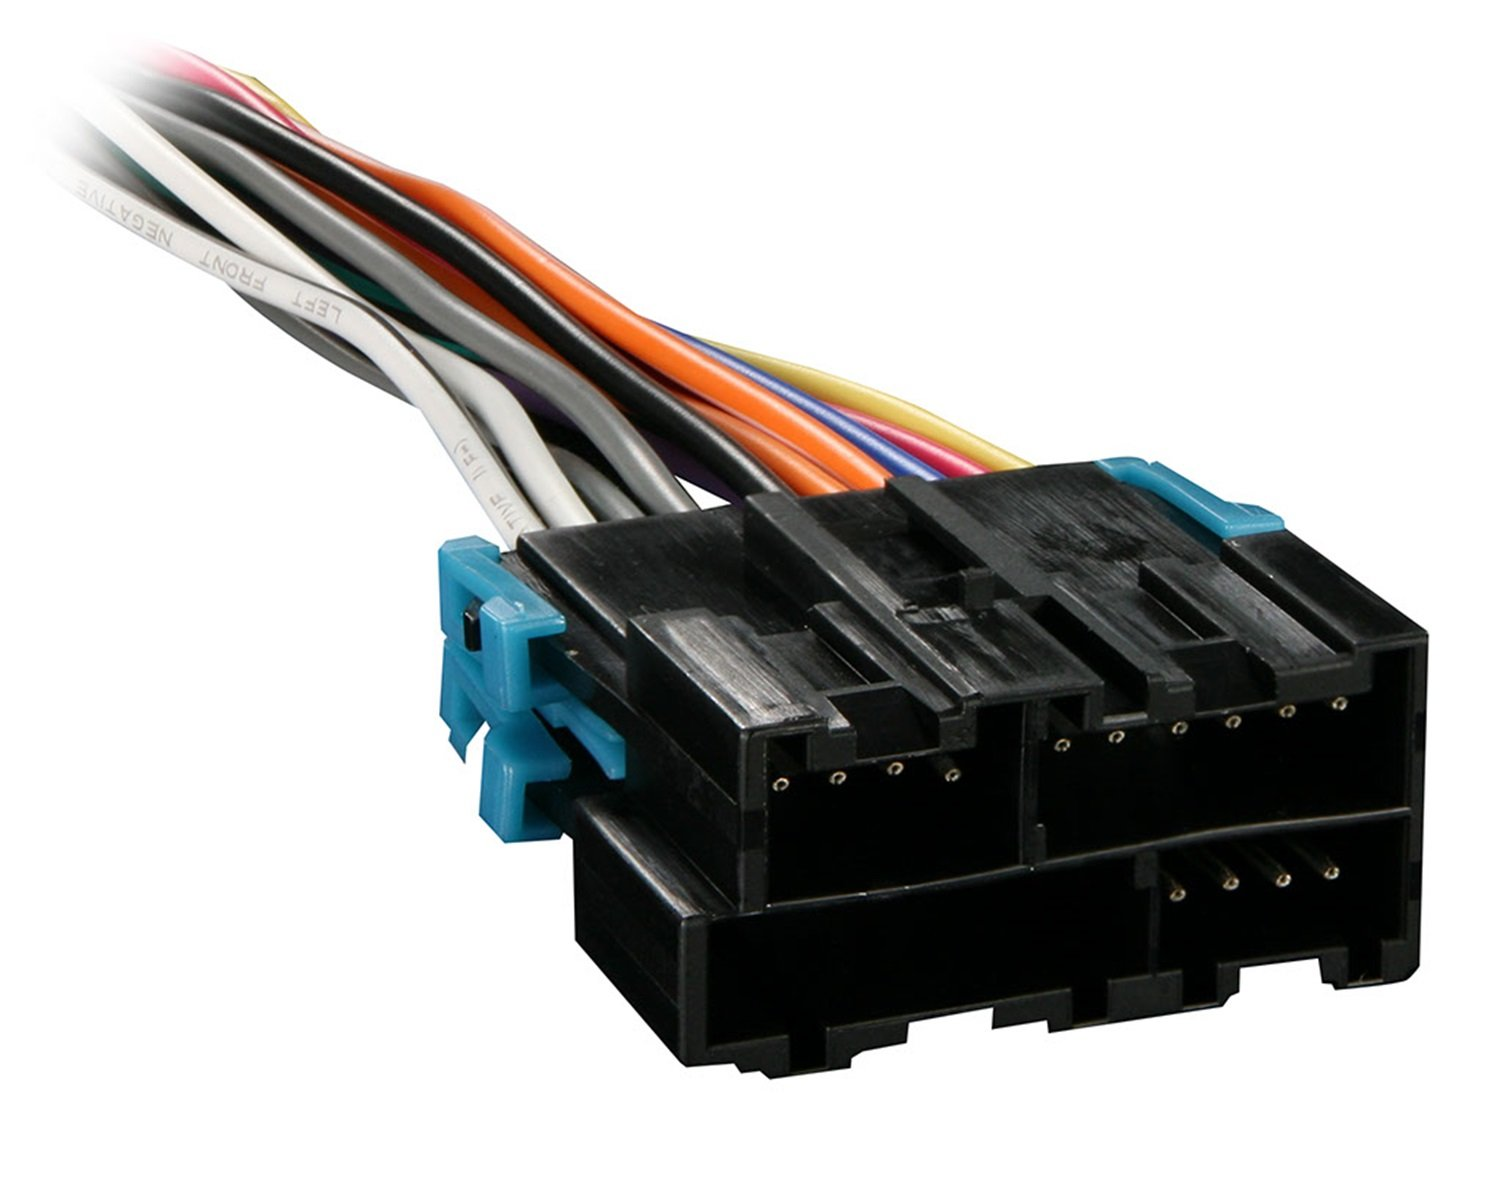 61 CwjZt1hL._SL1500_ radio wiring harnesses amazon com snap on wire harness at mifinder.co